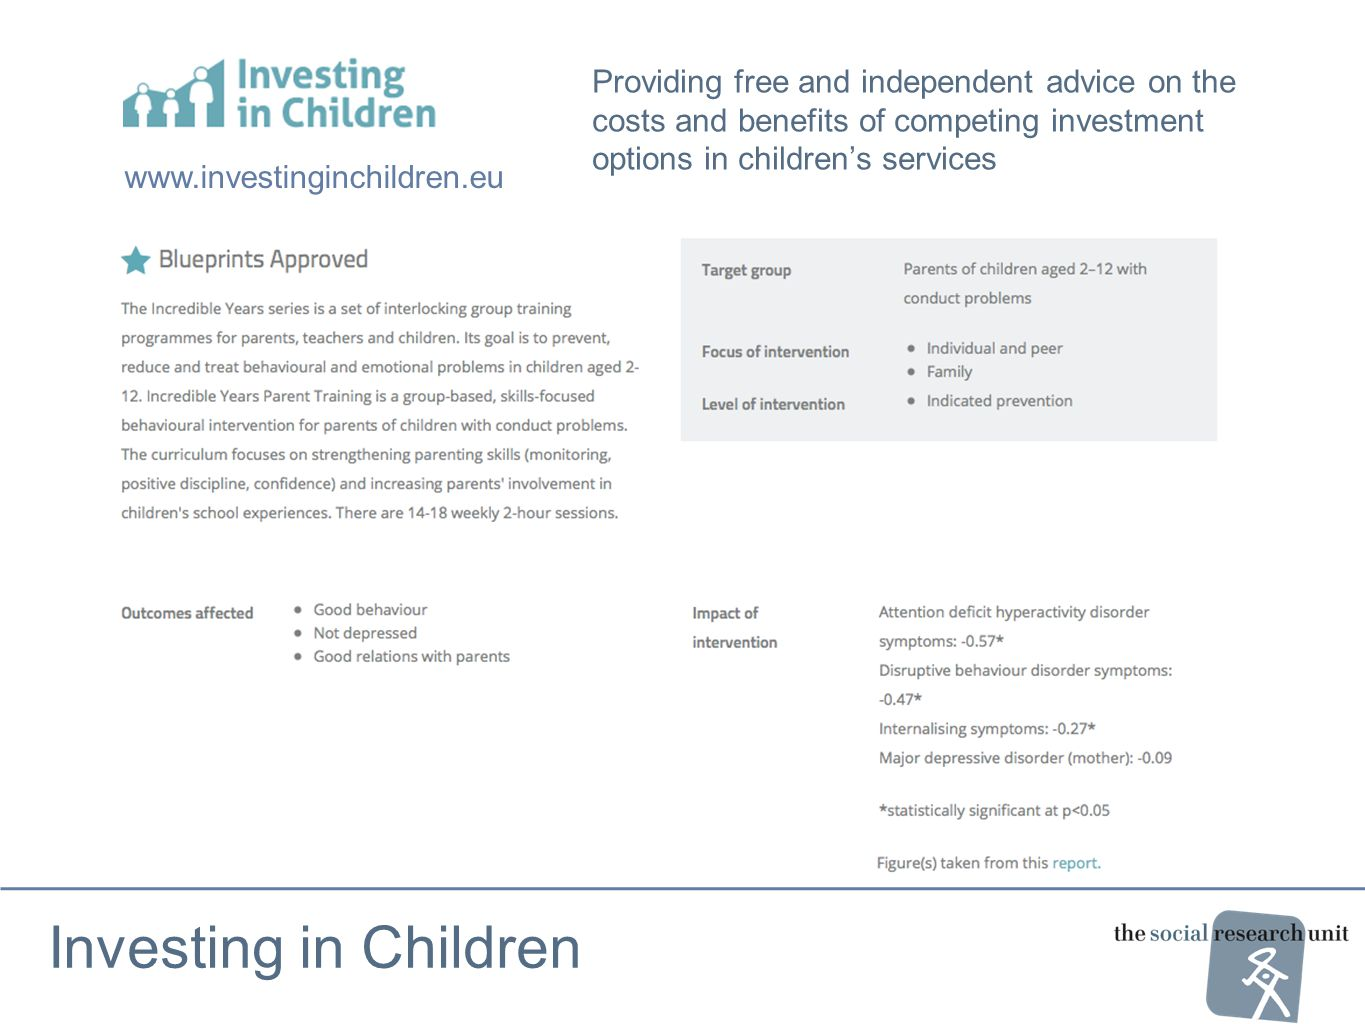 Investing in Children Providing free and independent advice on the costs and benefits of competing investment options in children's services www.investinginchildren.eu